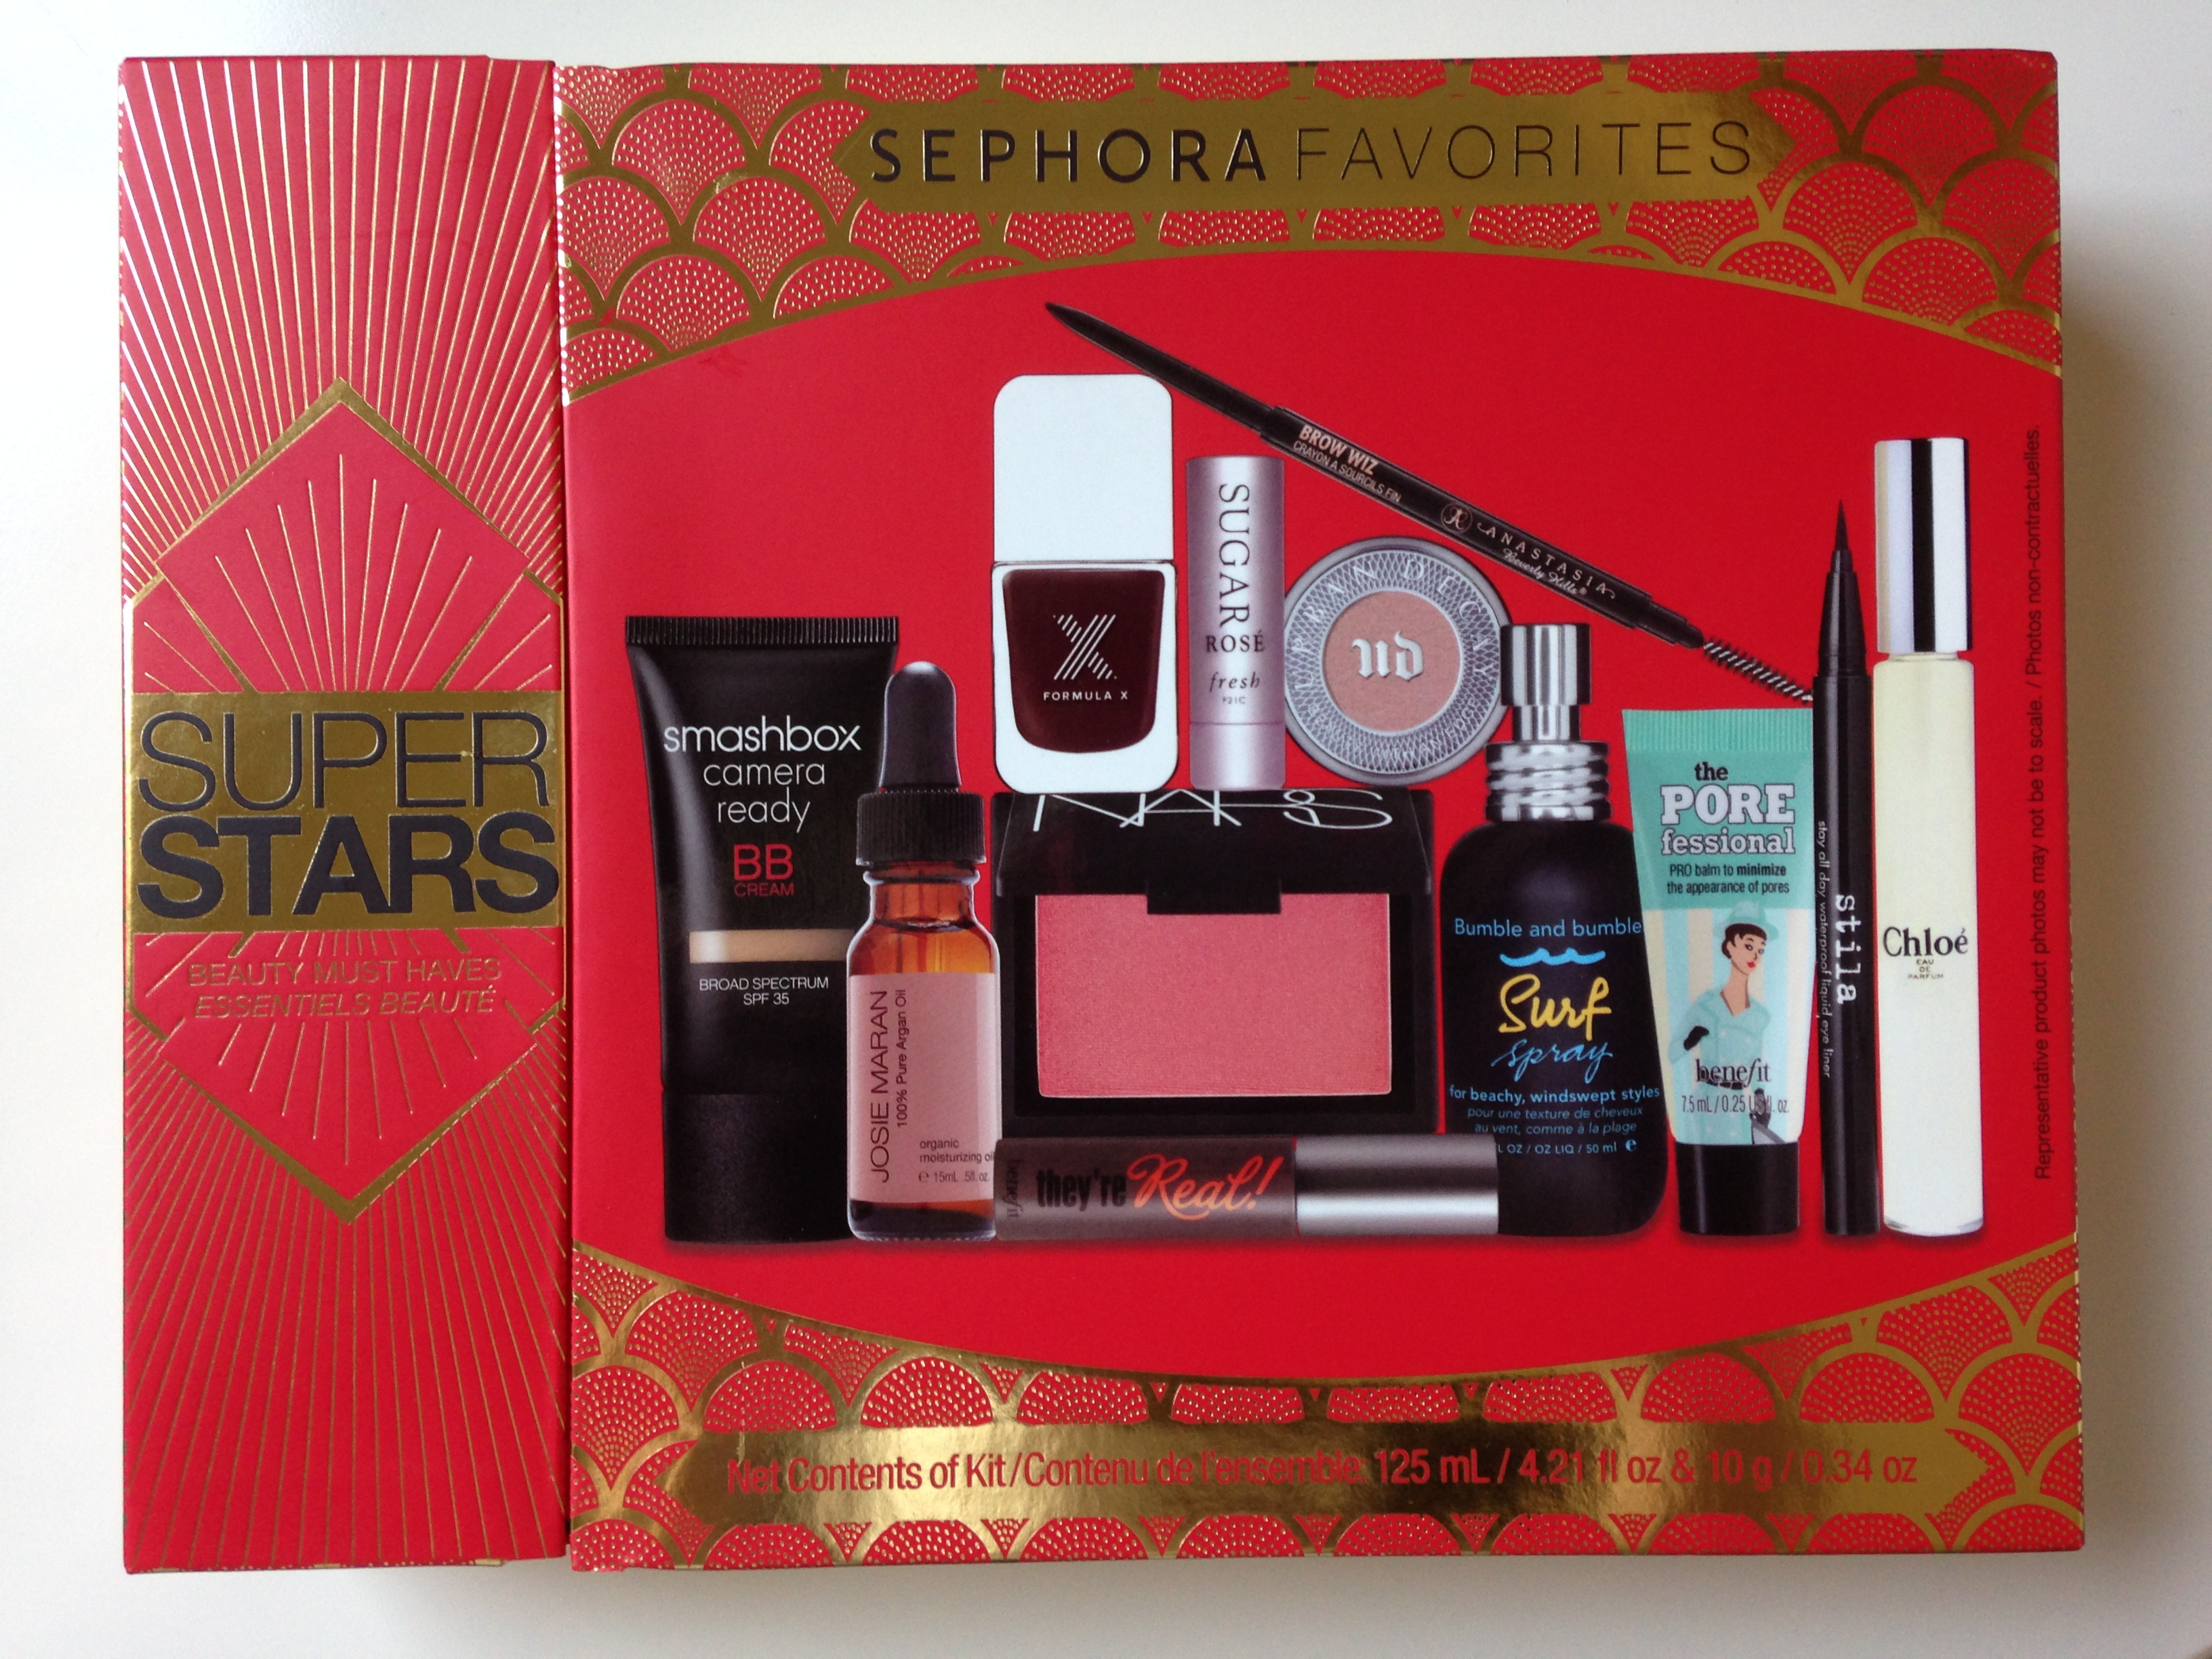 Sephora Favorites Super Stars 2014